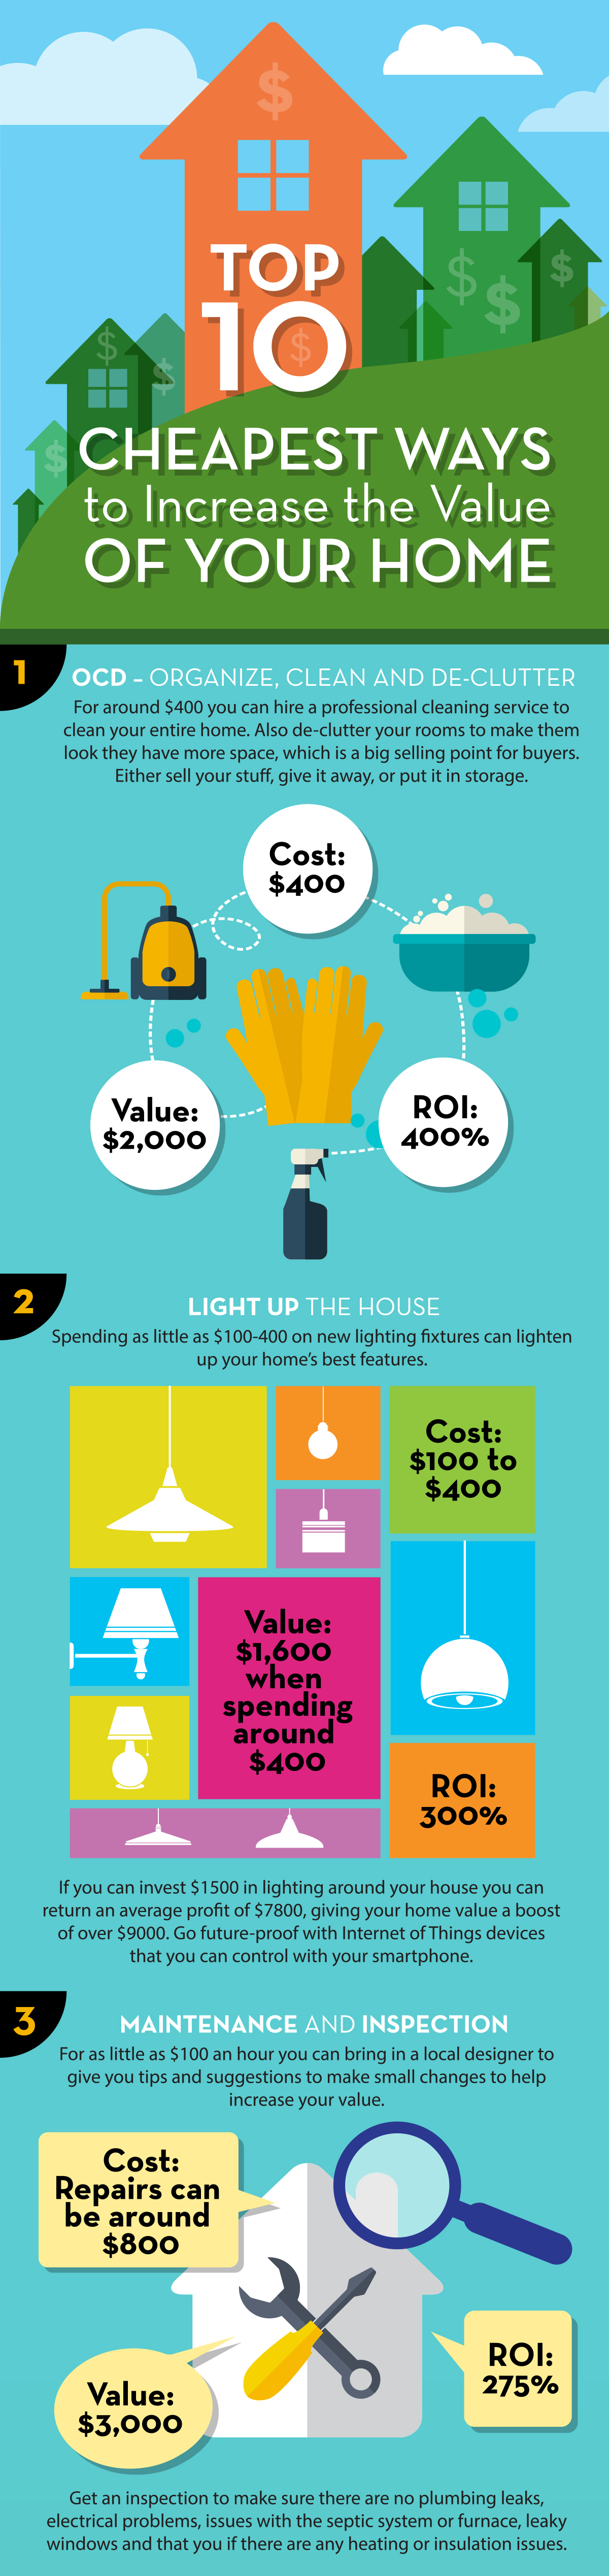 Increase The Value Of Your Home 1 2